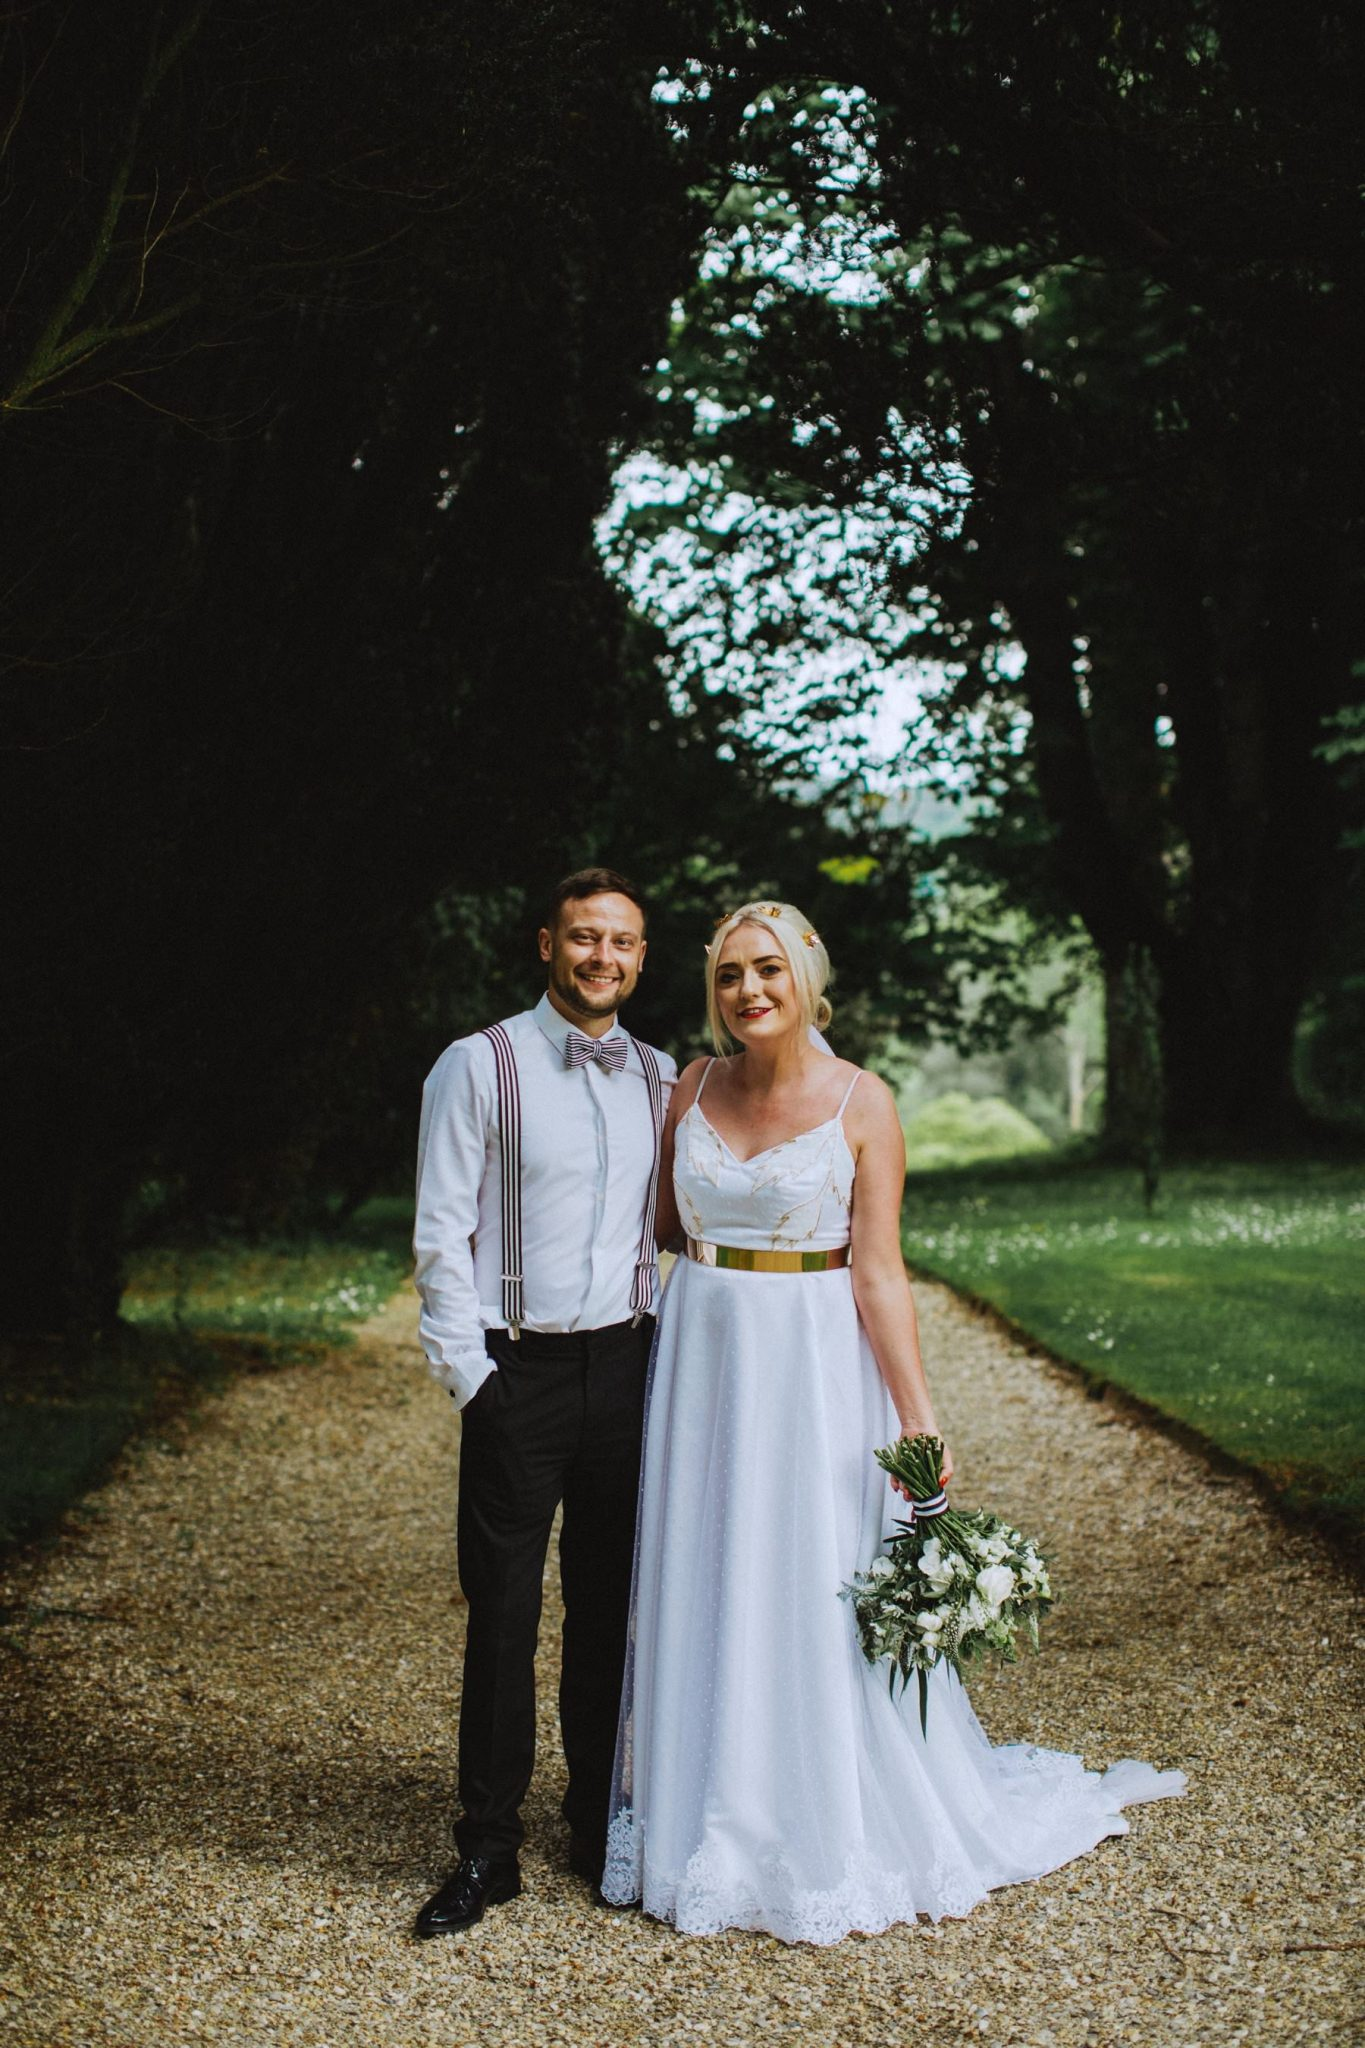 wedding photography portraits at drenagh estate northern ireland